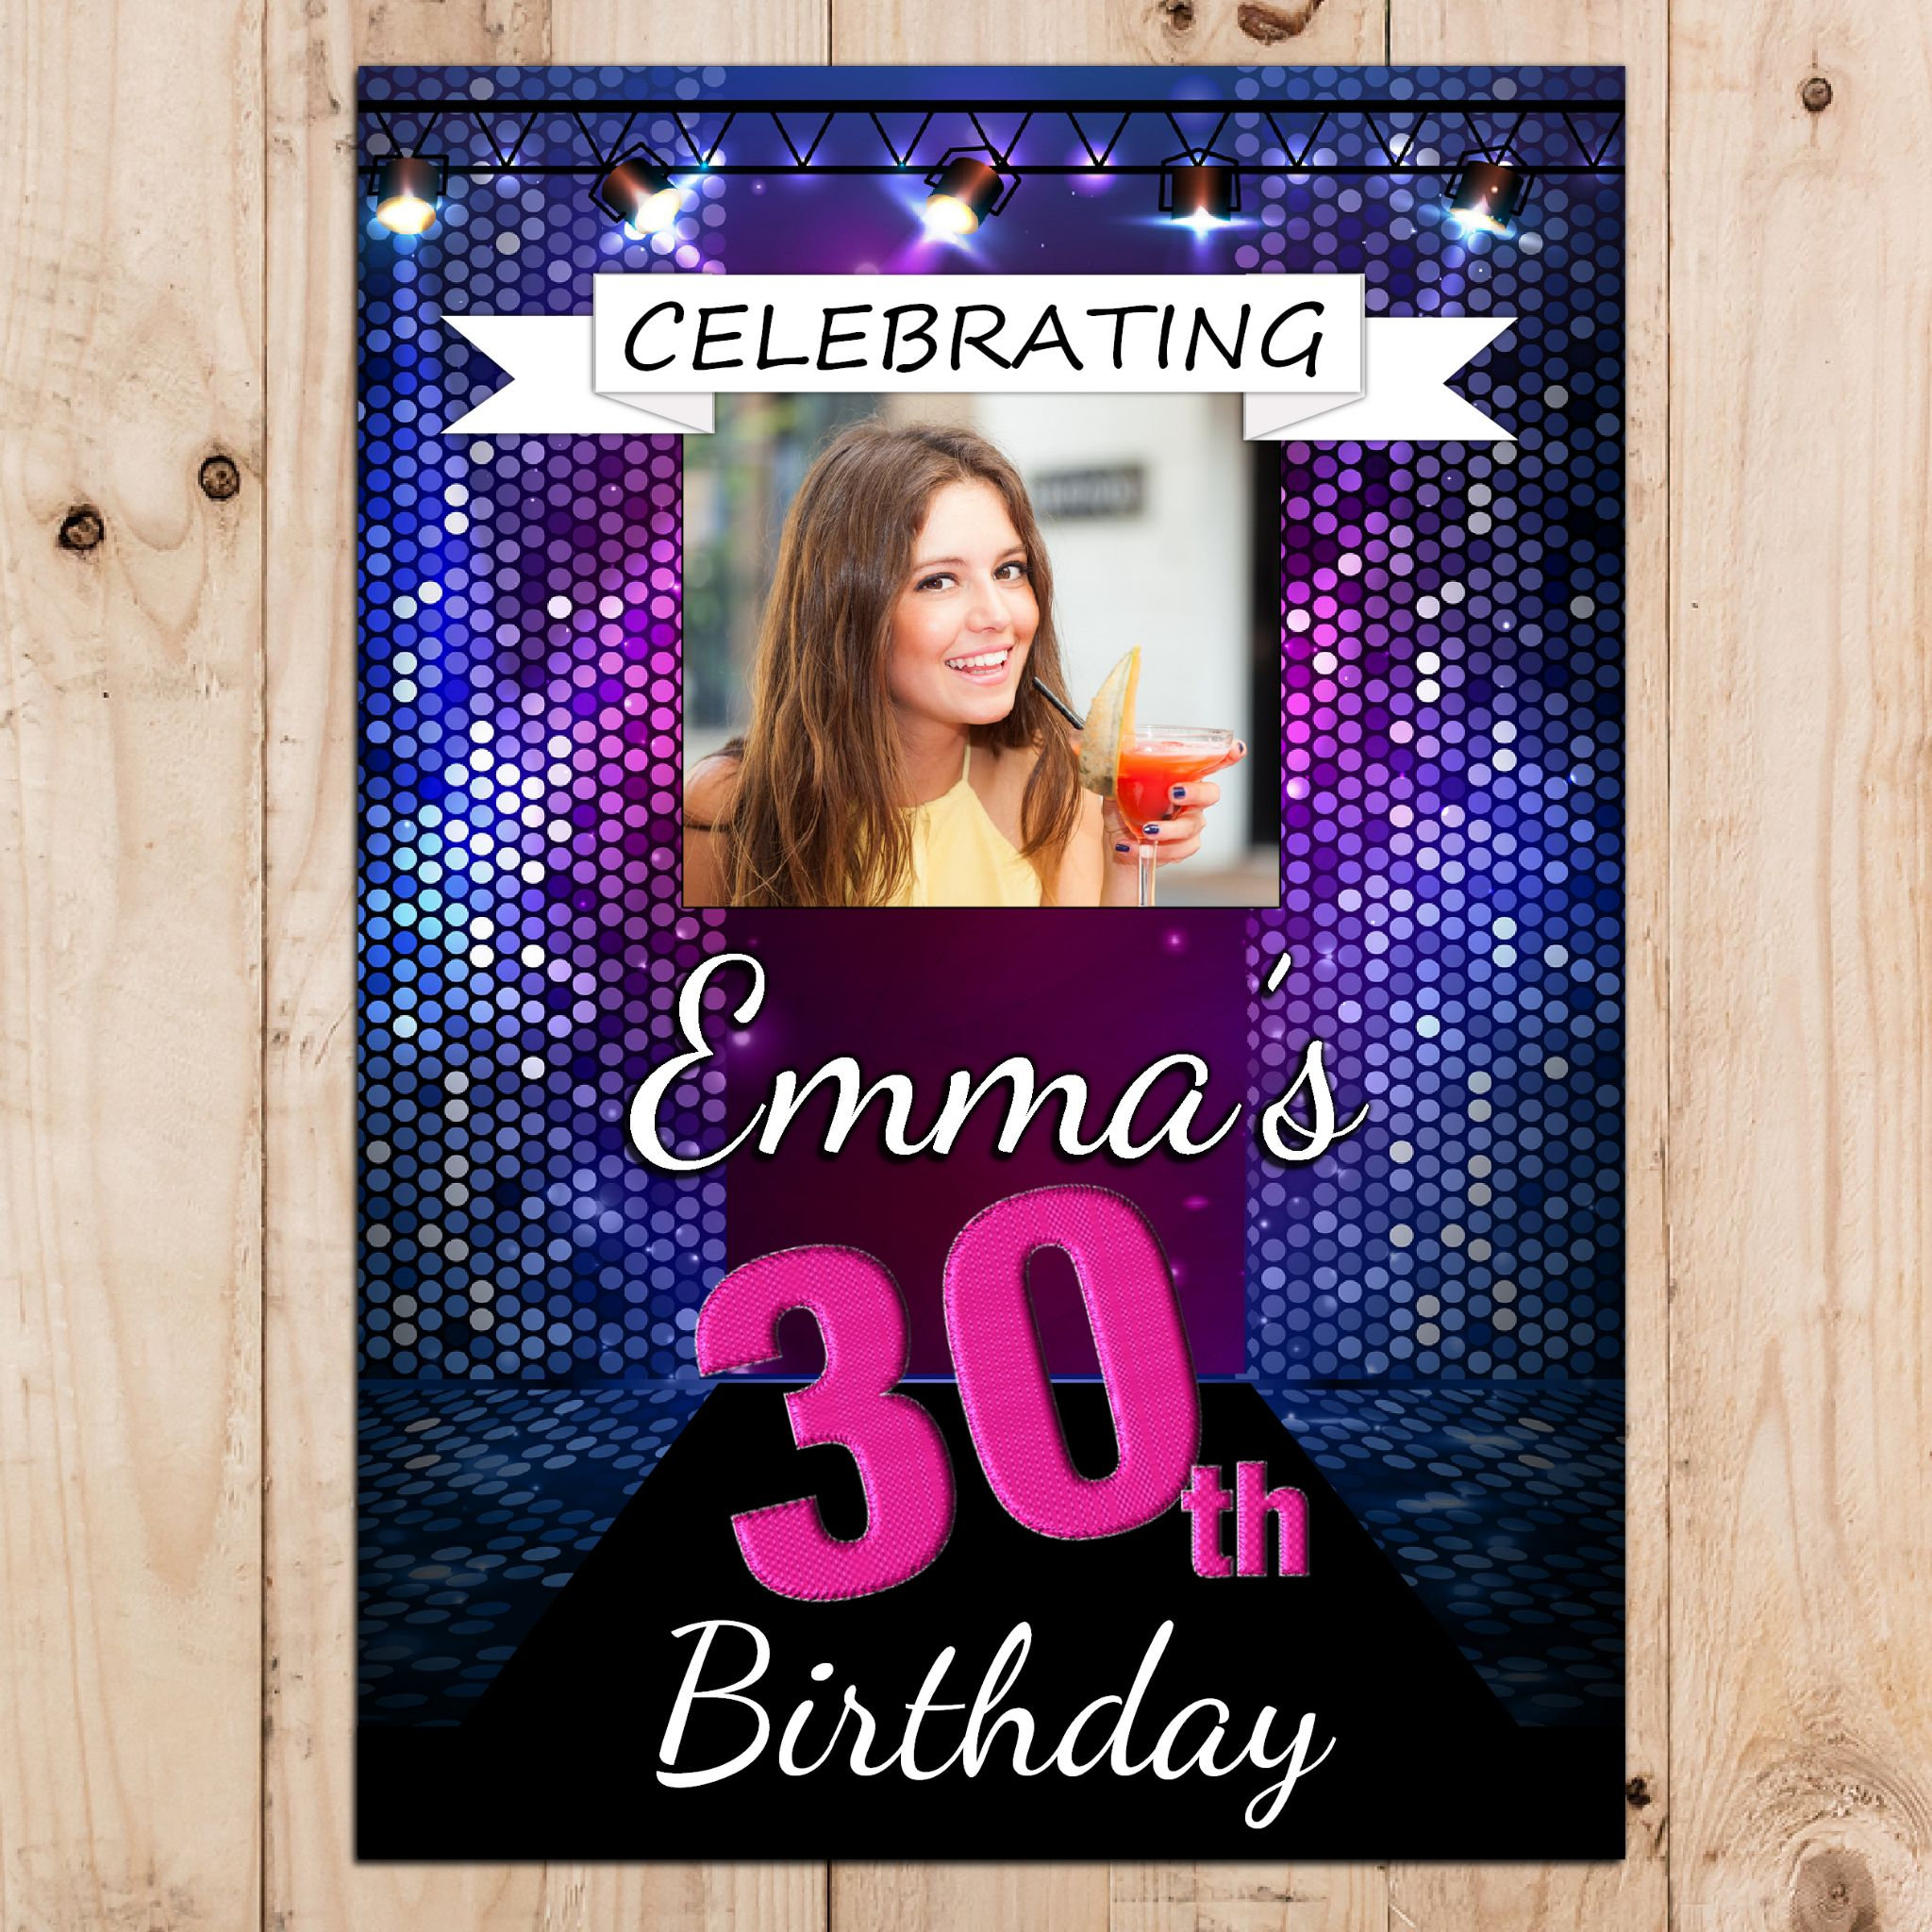 purple 50th birthday banners ; personalised-disco-bokeh-happy-18th-21st-30th-40th-50th-birthday-party-photo-banner-poster-n56-any-age--size-a3-29